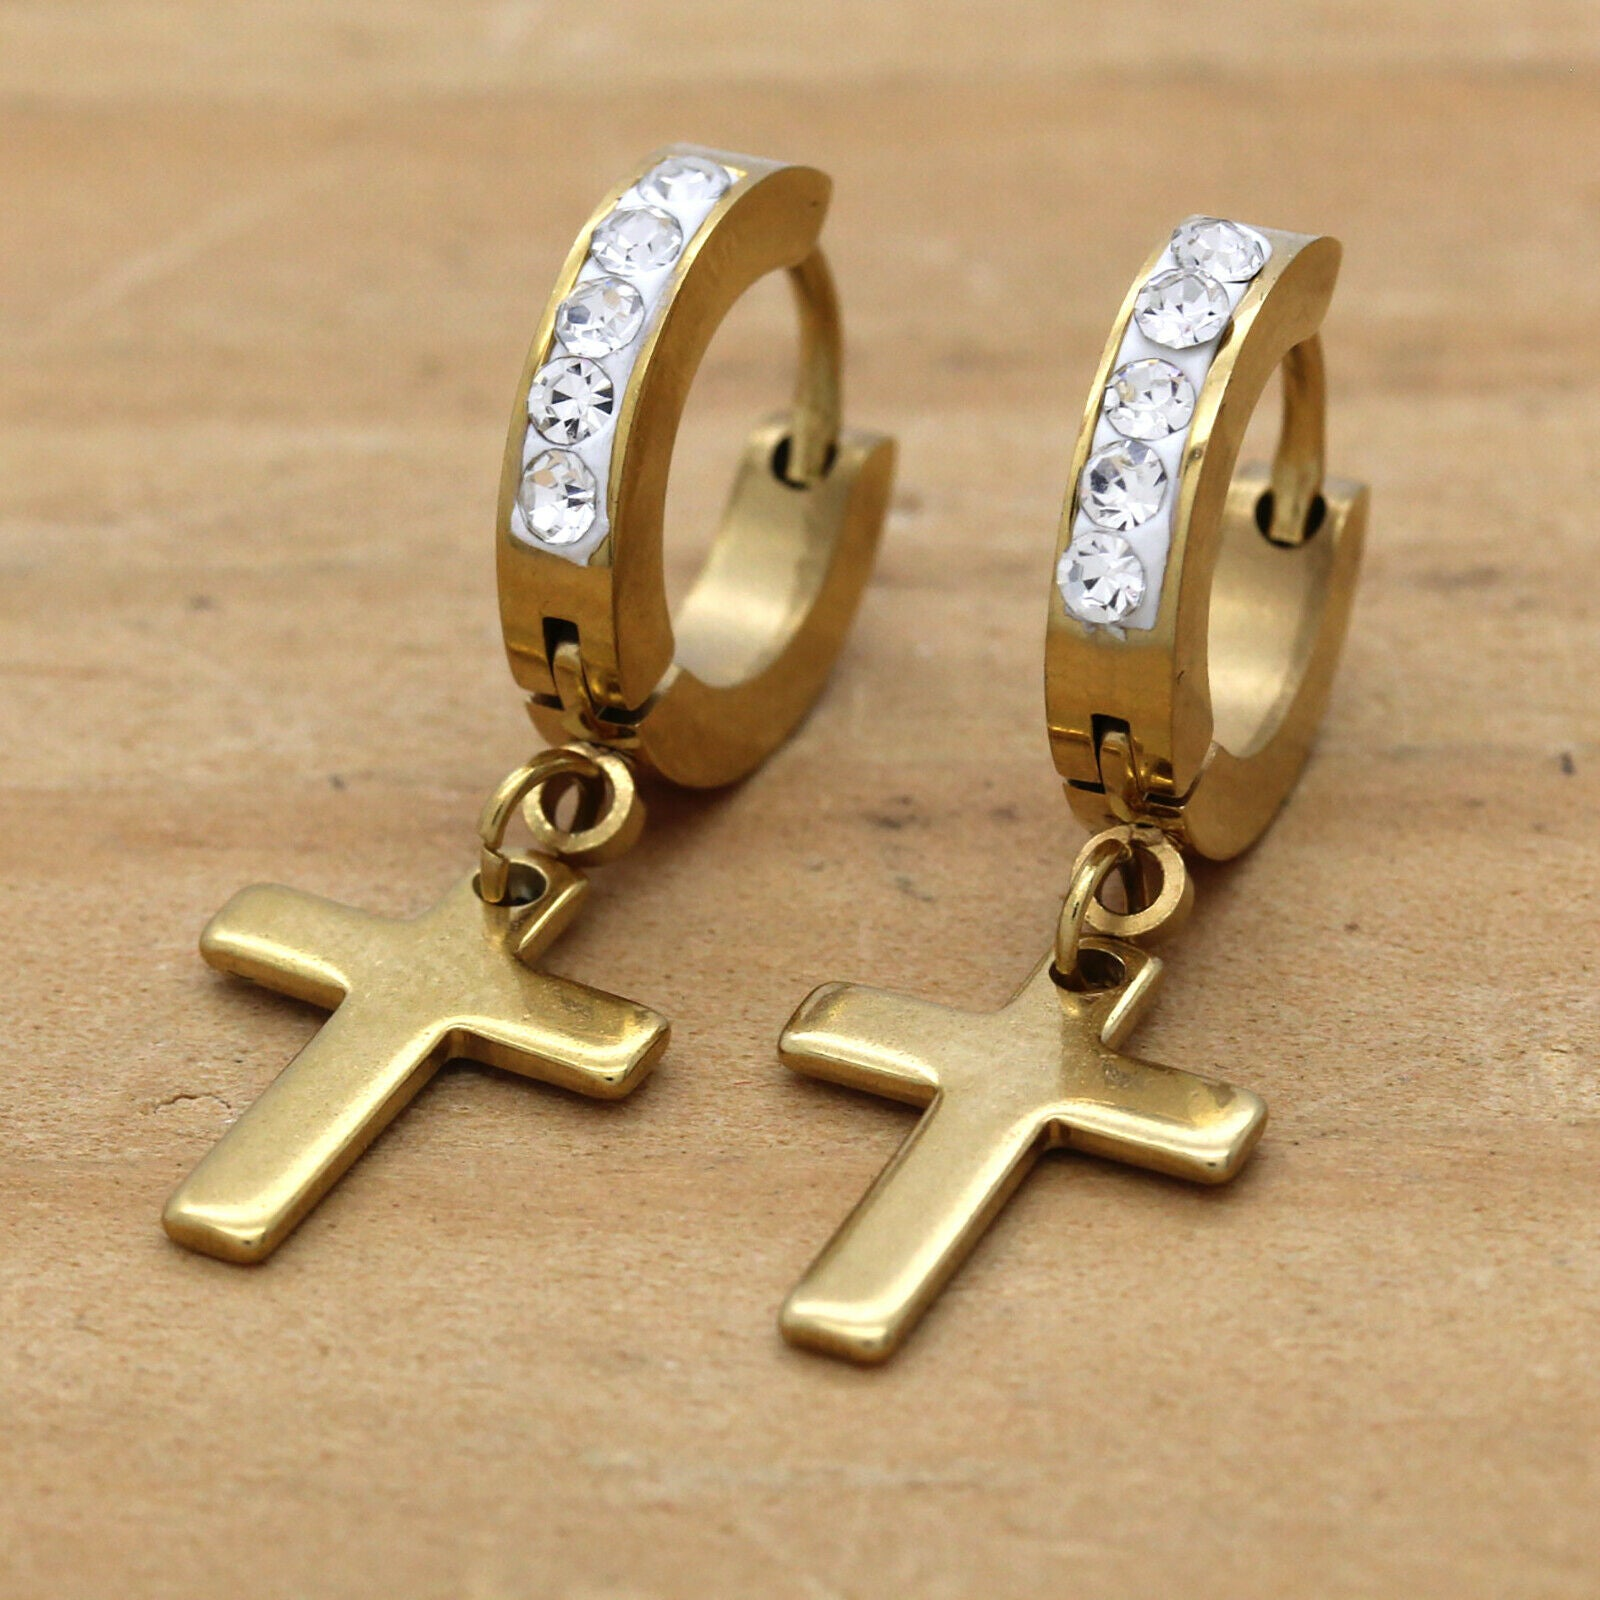 Cz Huggie Hoop Cross Dangle 1 Row GOLD STAINLESS STEEL FILLED EARRINGS